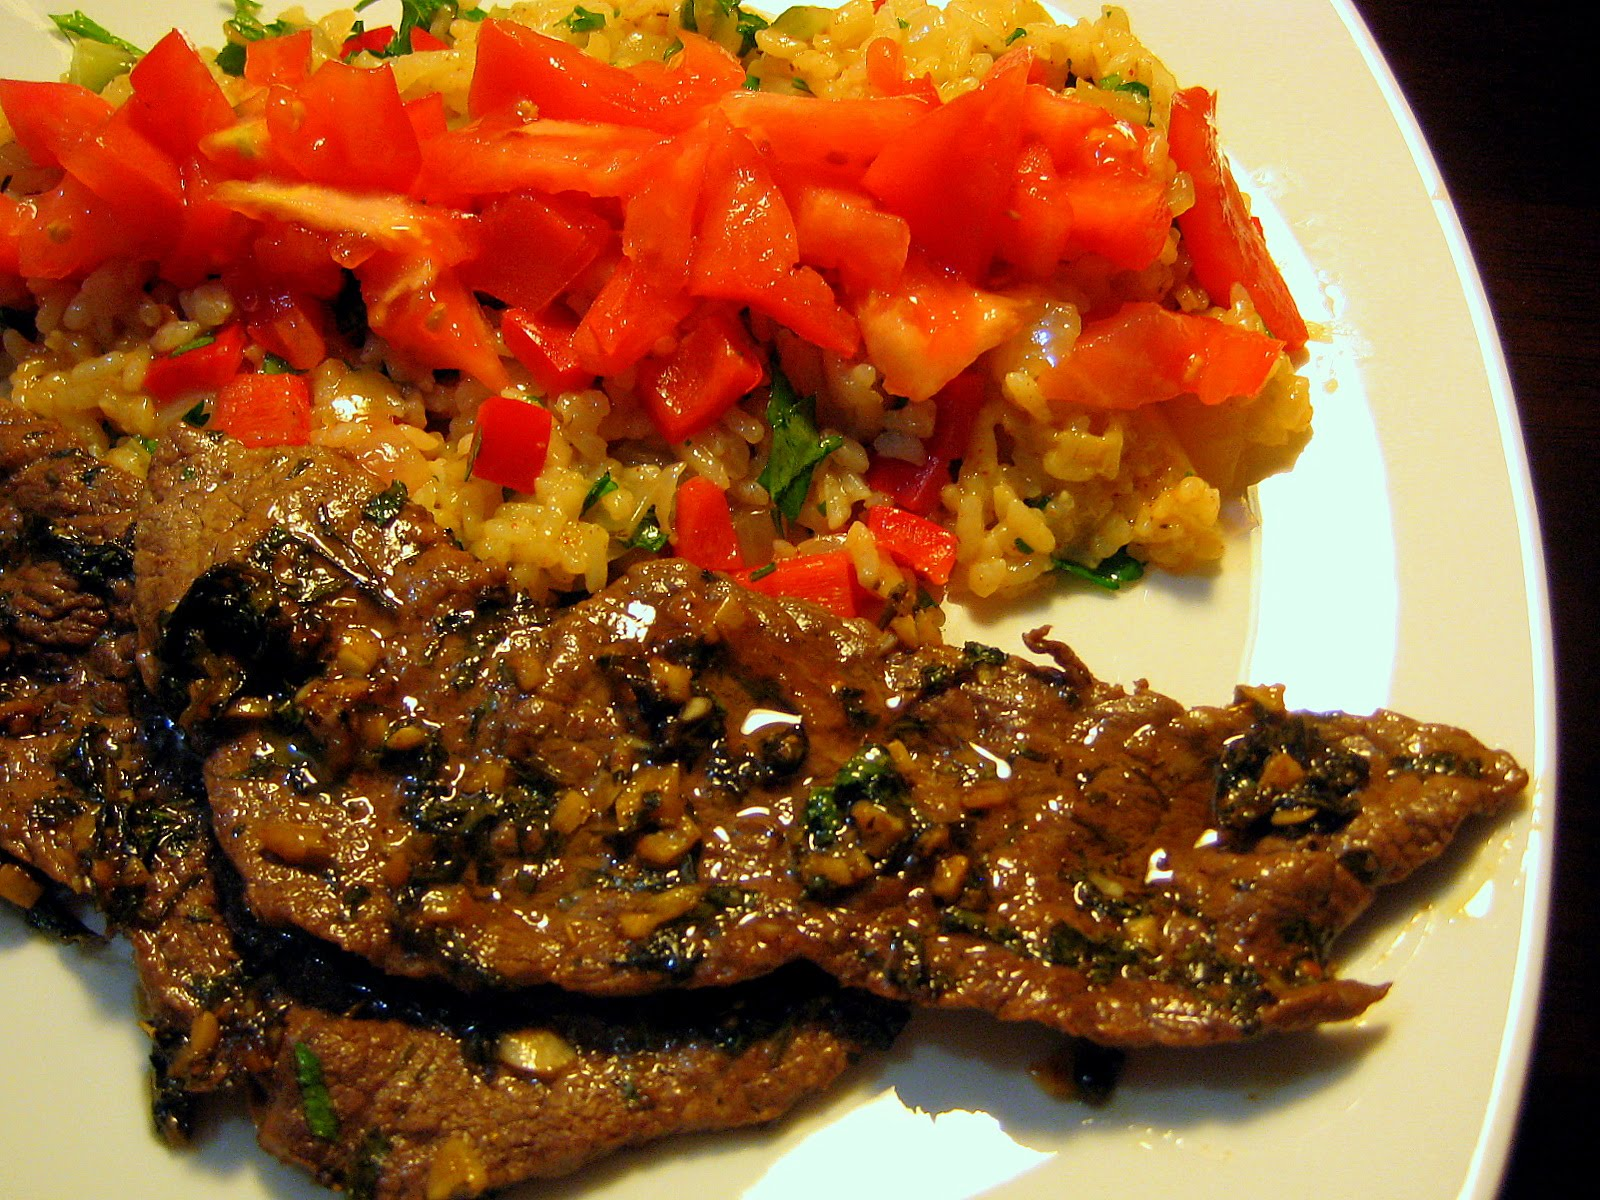 CHIMICHURRI STEAK WITH MEXICAN RICE